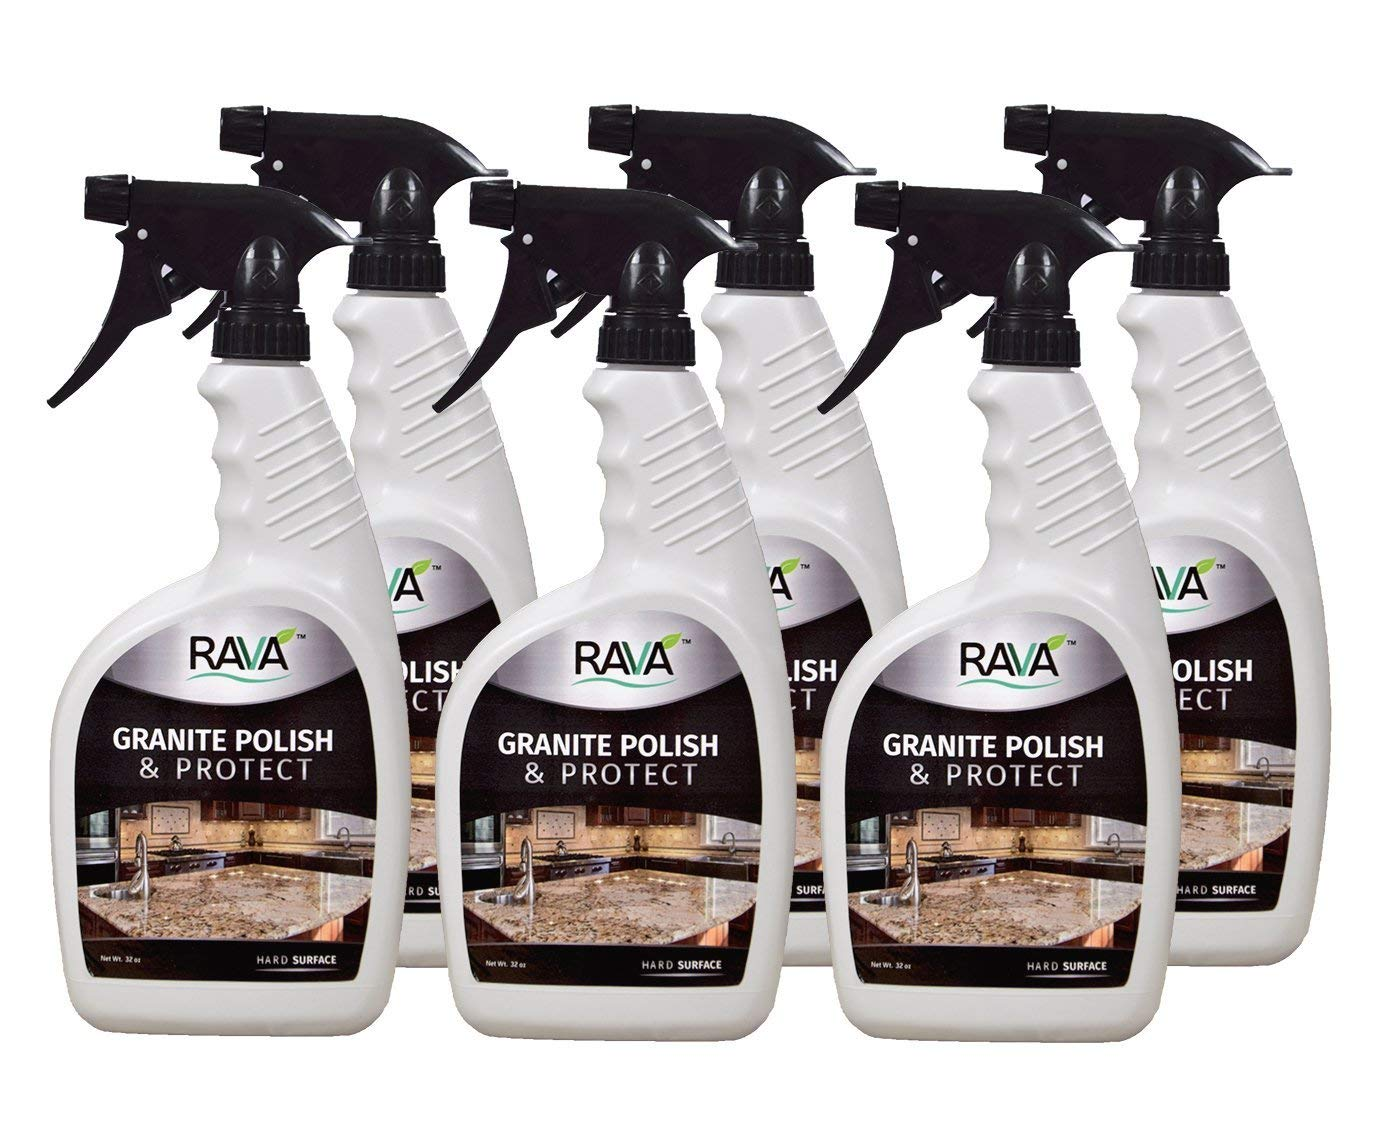 RAVA Granite Polish & Protect 32oz Bottle 6 Pack Daily use to Clean and Shine Streak Free No Residue for Marble Granite Ceramic terrazo Quartz Stone and Simulated Stone countertops